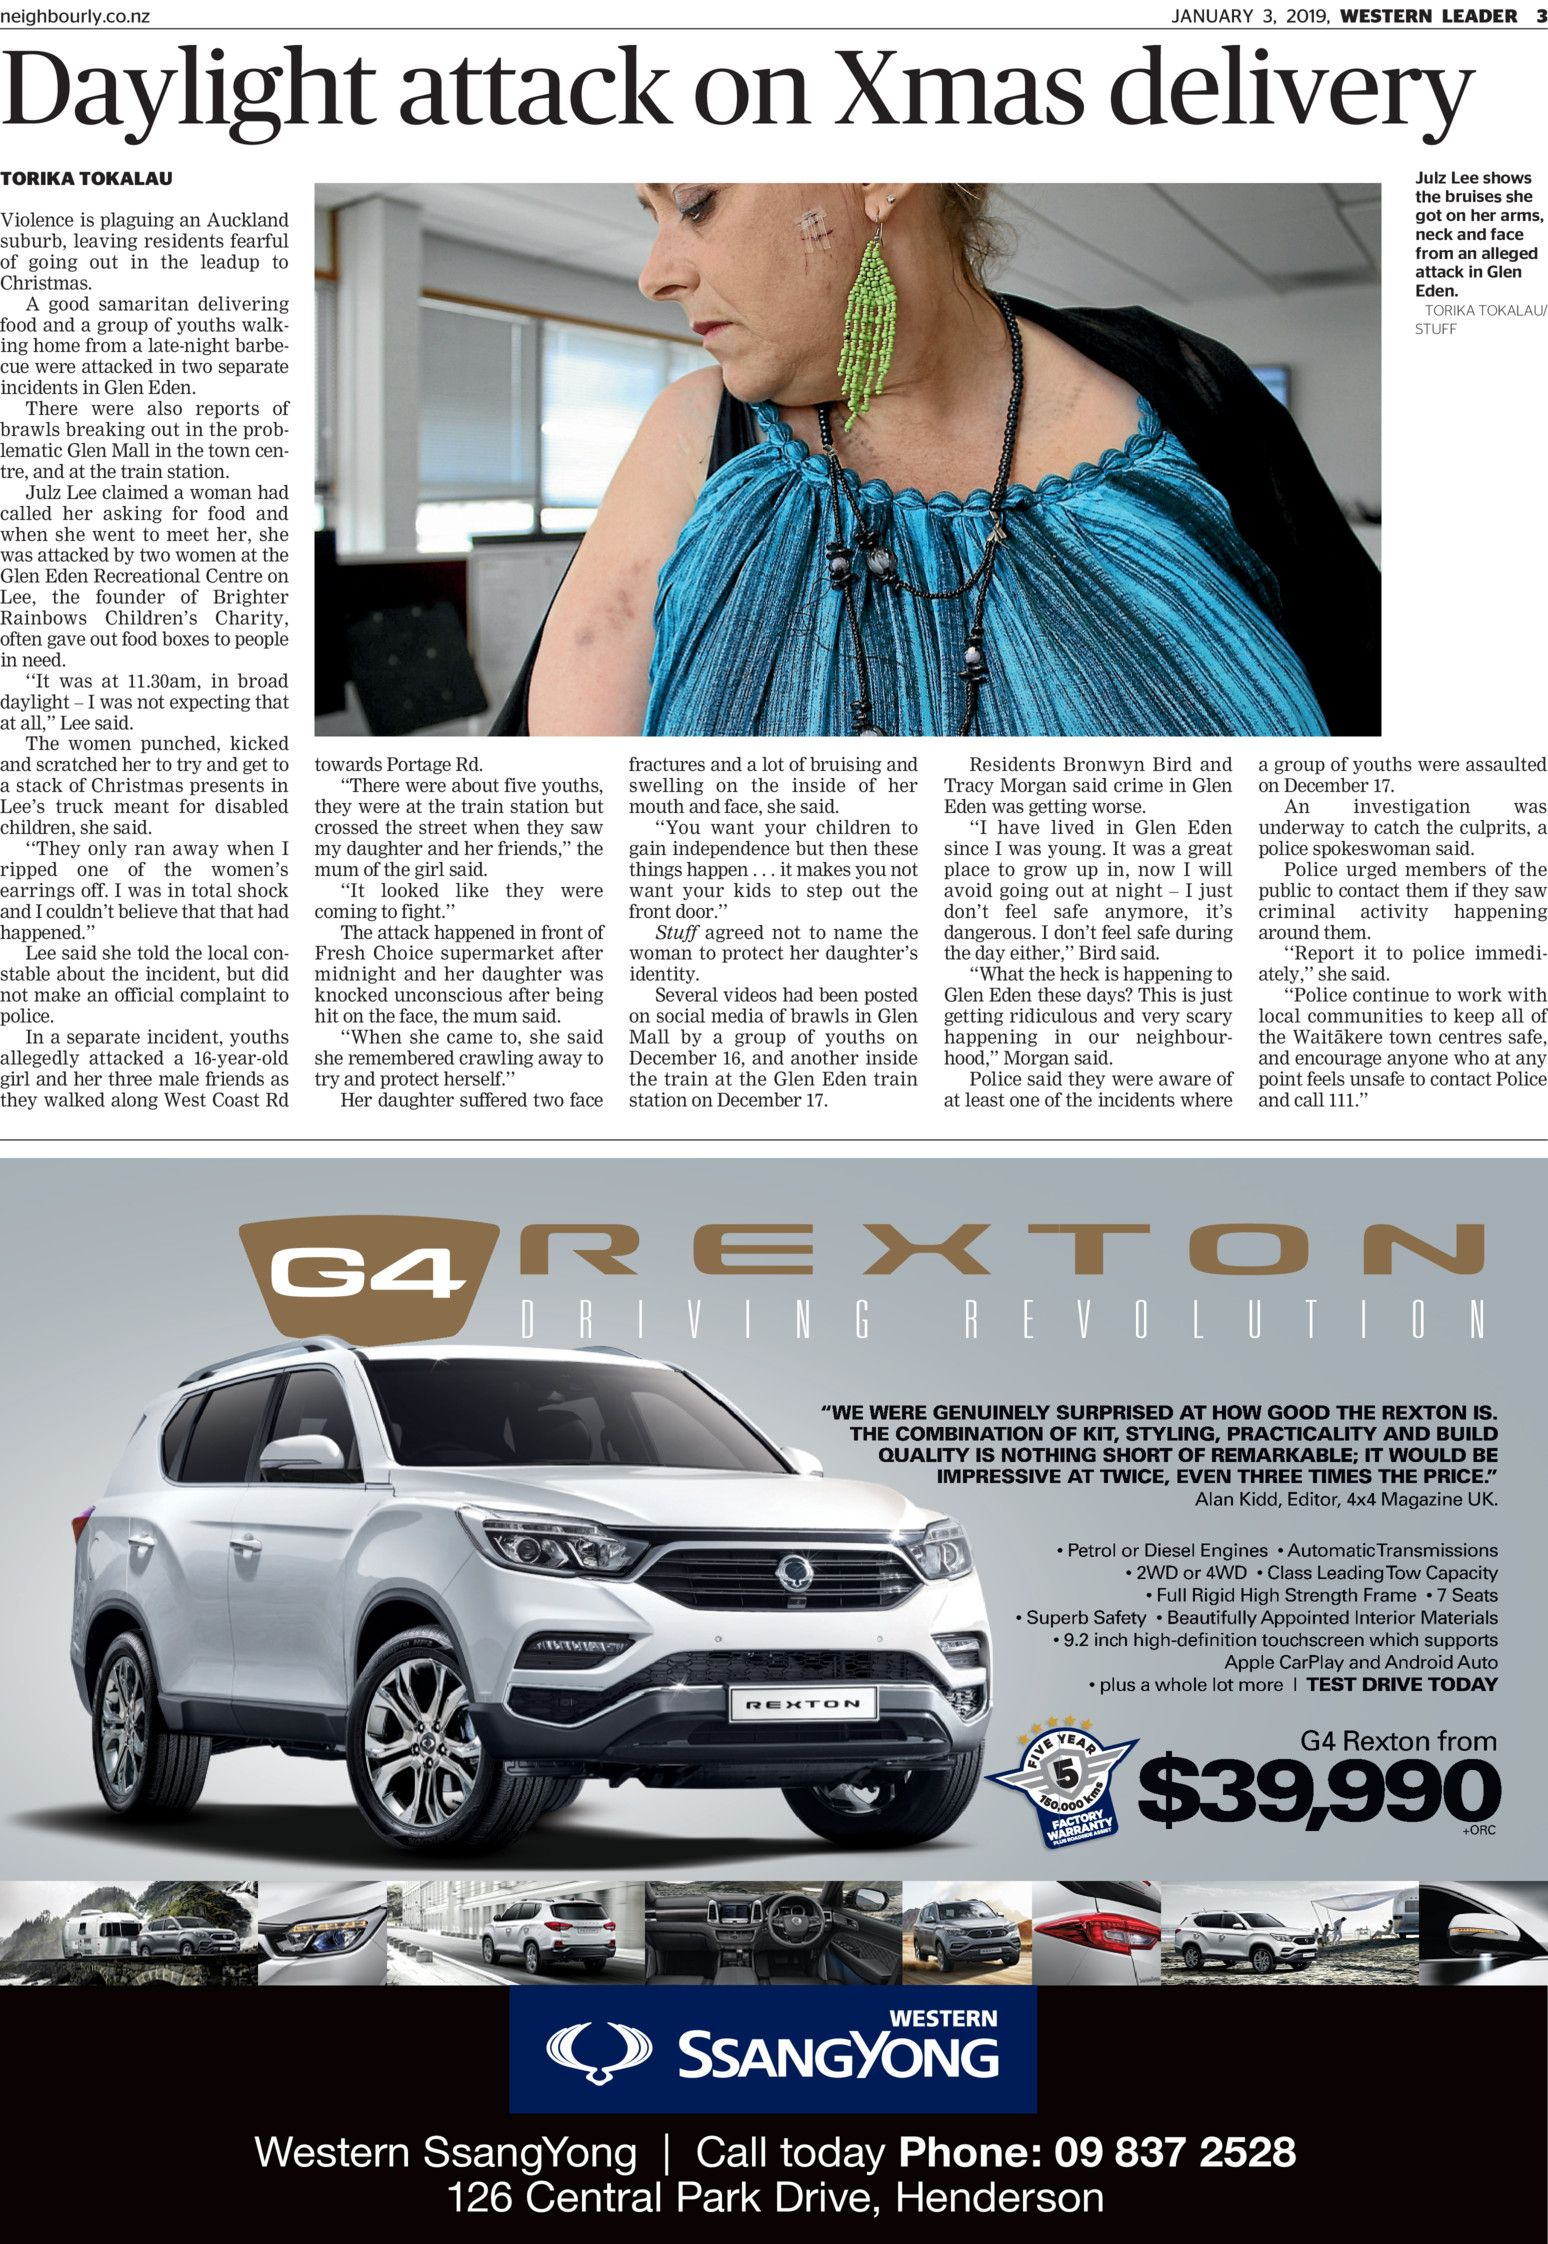 Western Leader Read Online On Neighbourly Vw Control Arm Arms Low Price Neighbourlyconz